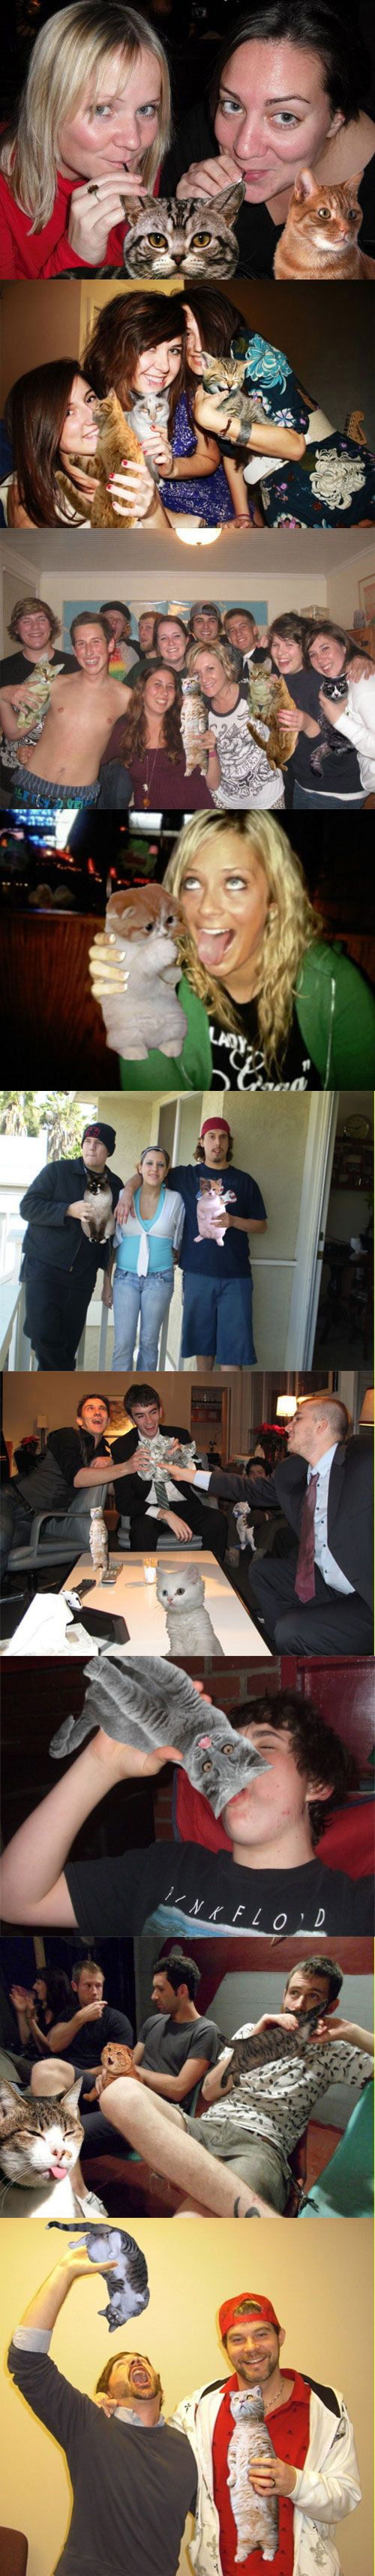 How to properly hide alcohol in your Facebook pictures.